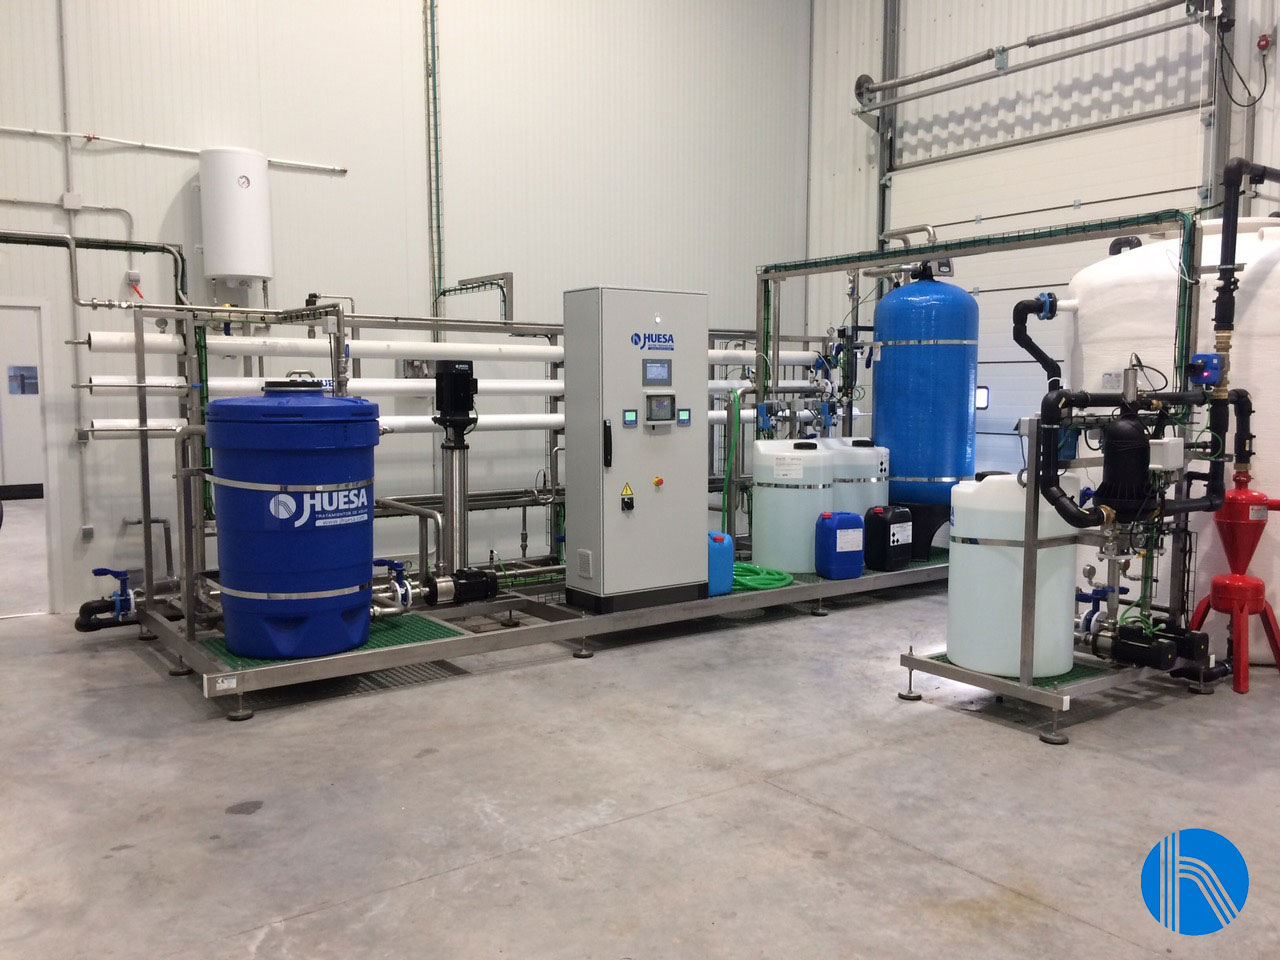 J. Huesa principal supplier of the integral water cycle equipment in a spirits drinks factory